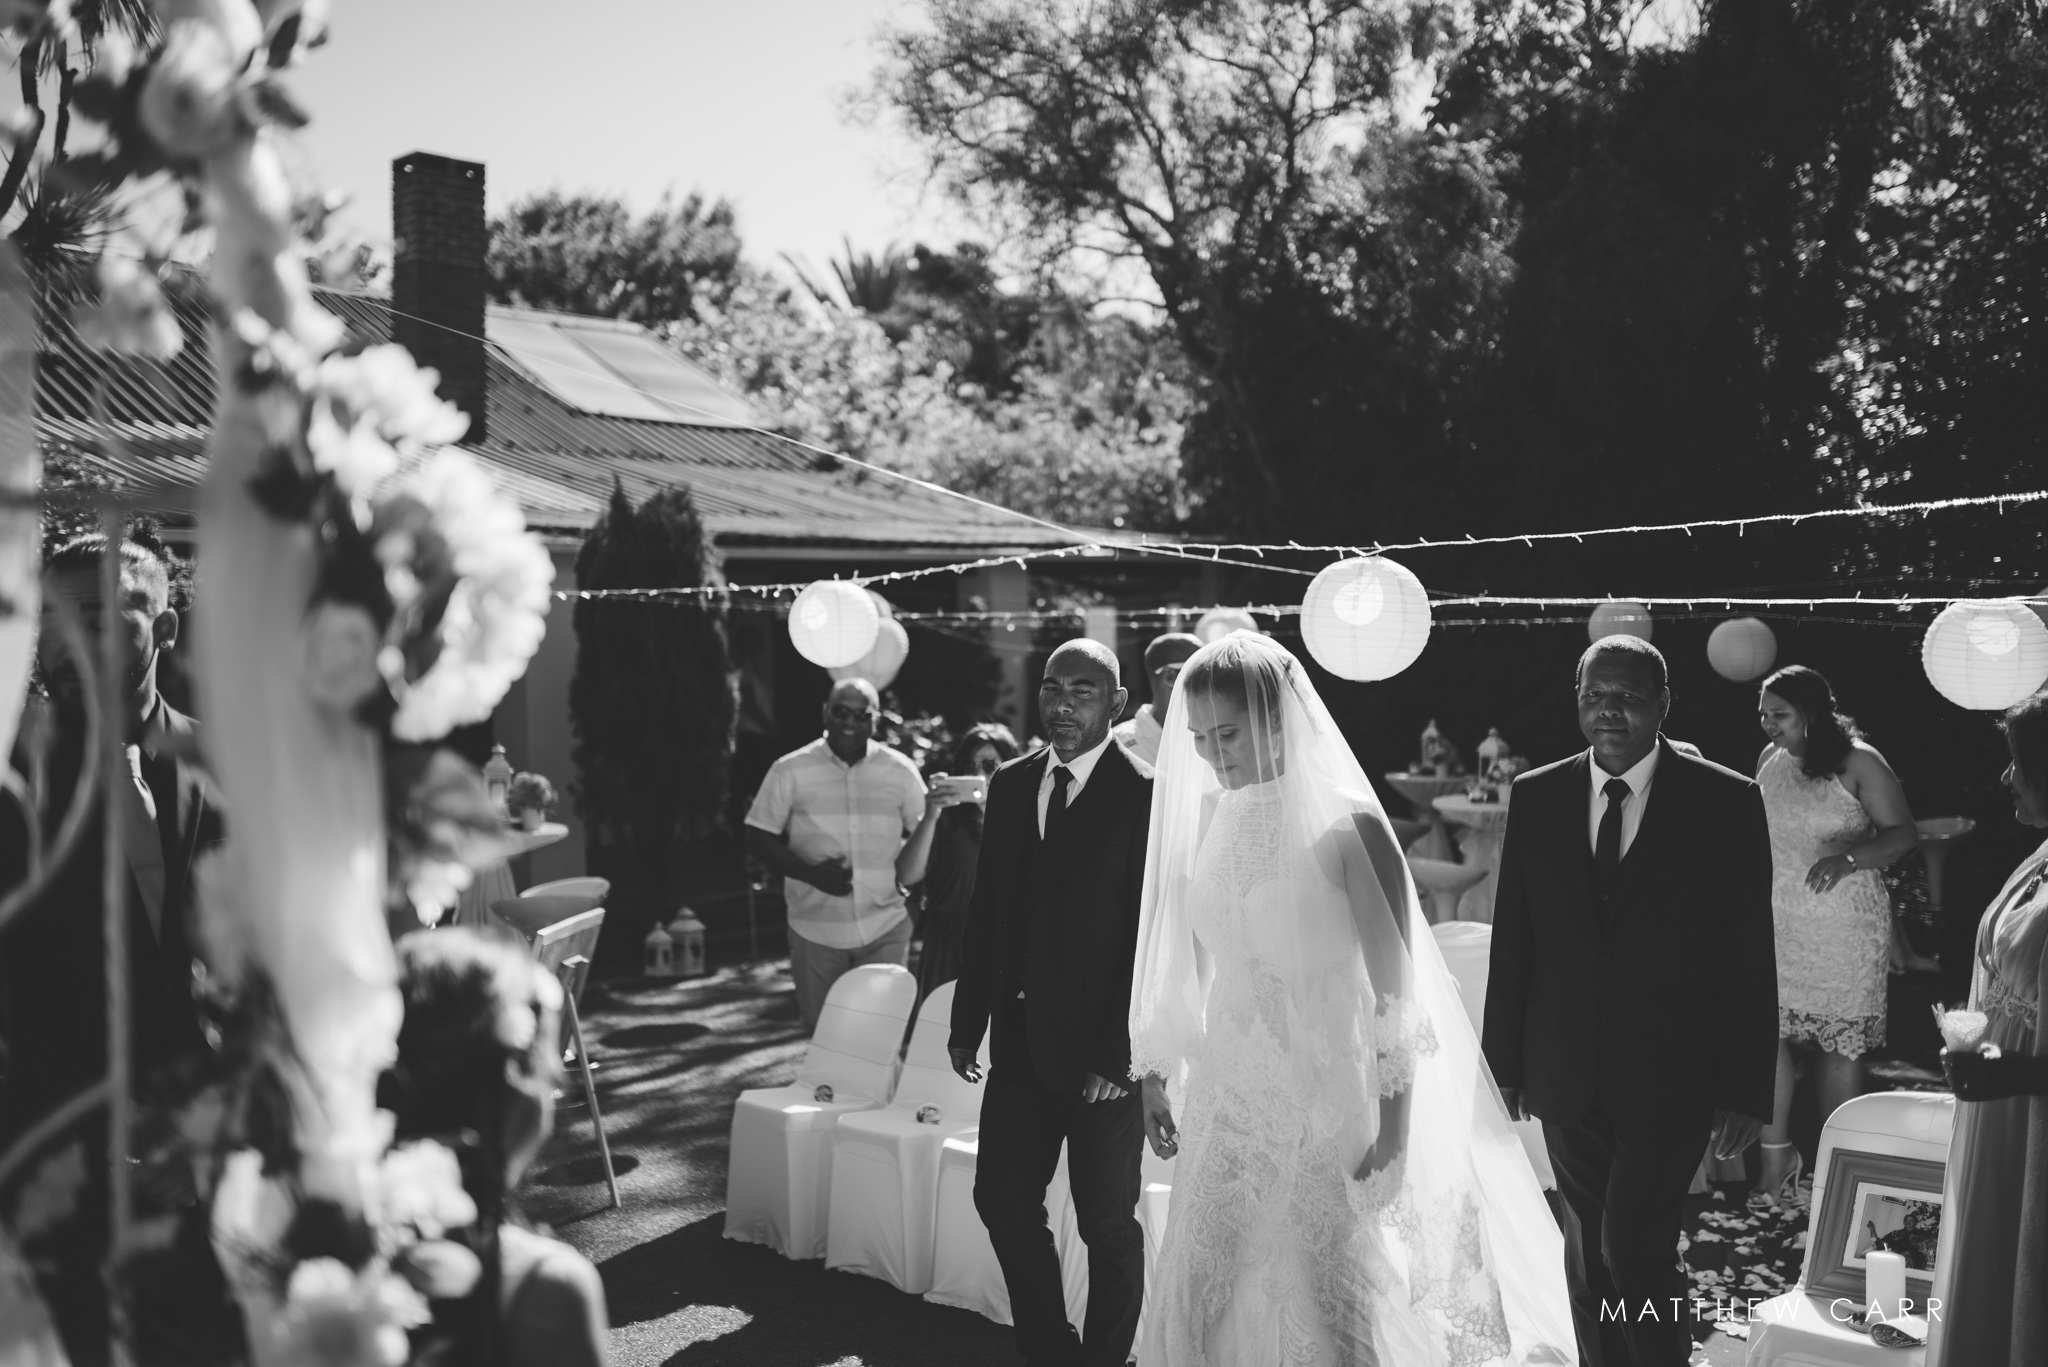 Ceremony & after - low res (for viewing, social media) (6 of 75).JPG